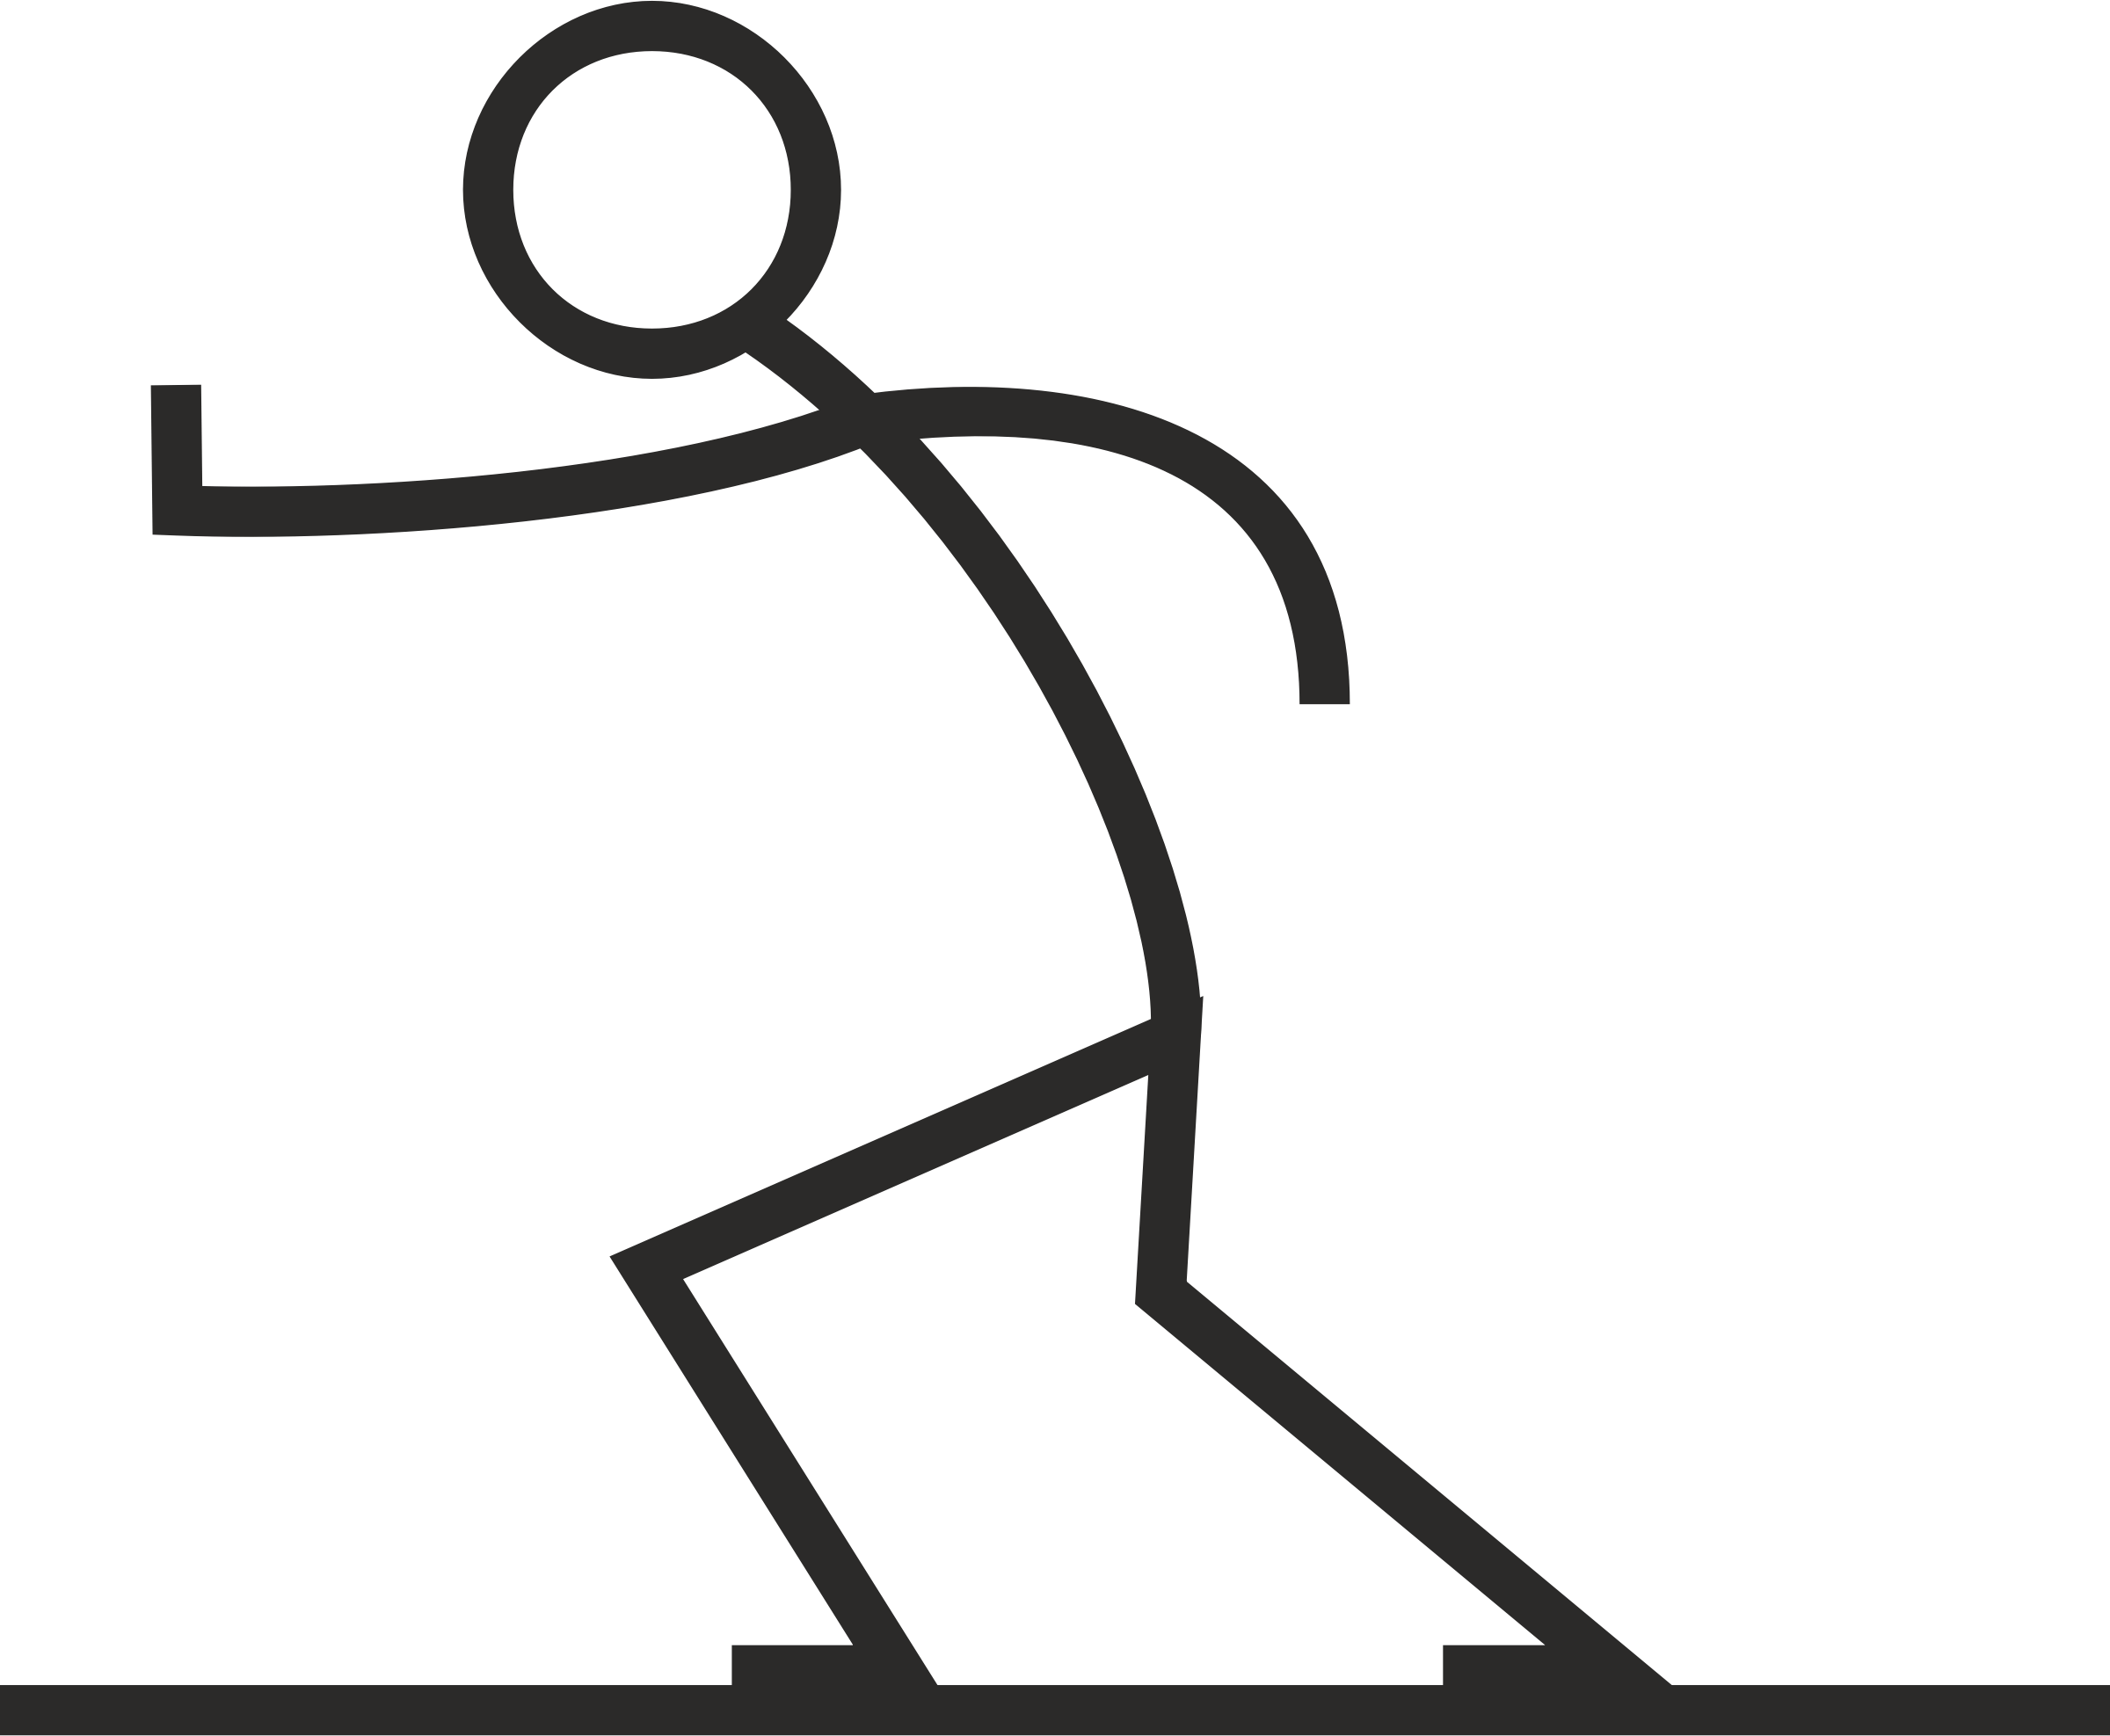 PNG HD Of Stick Figures - 130055